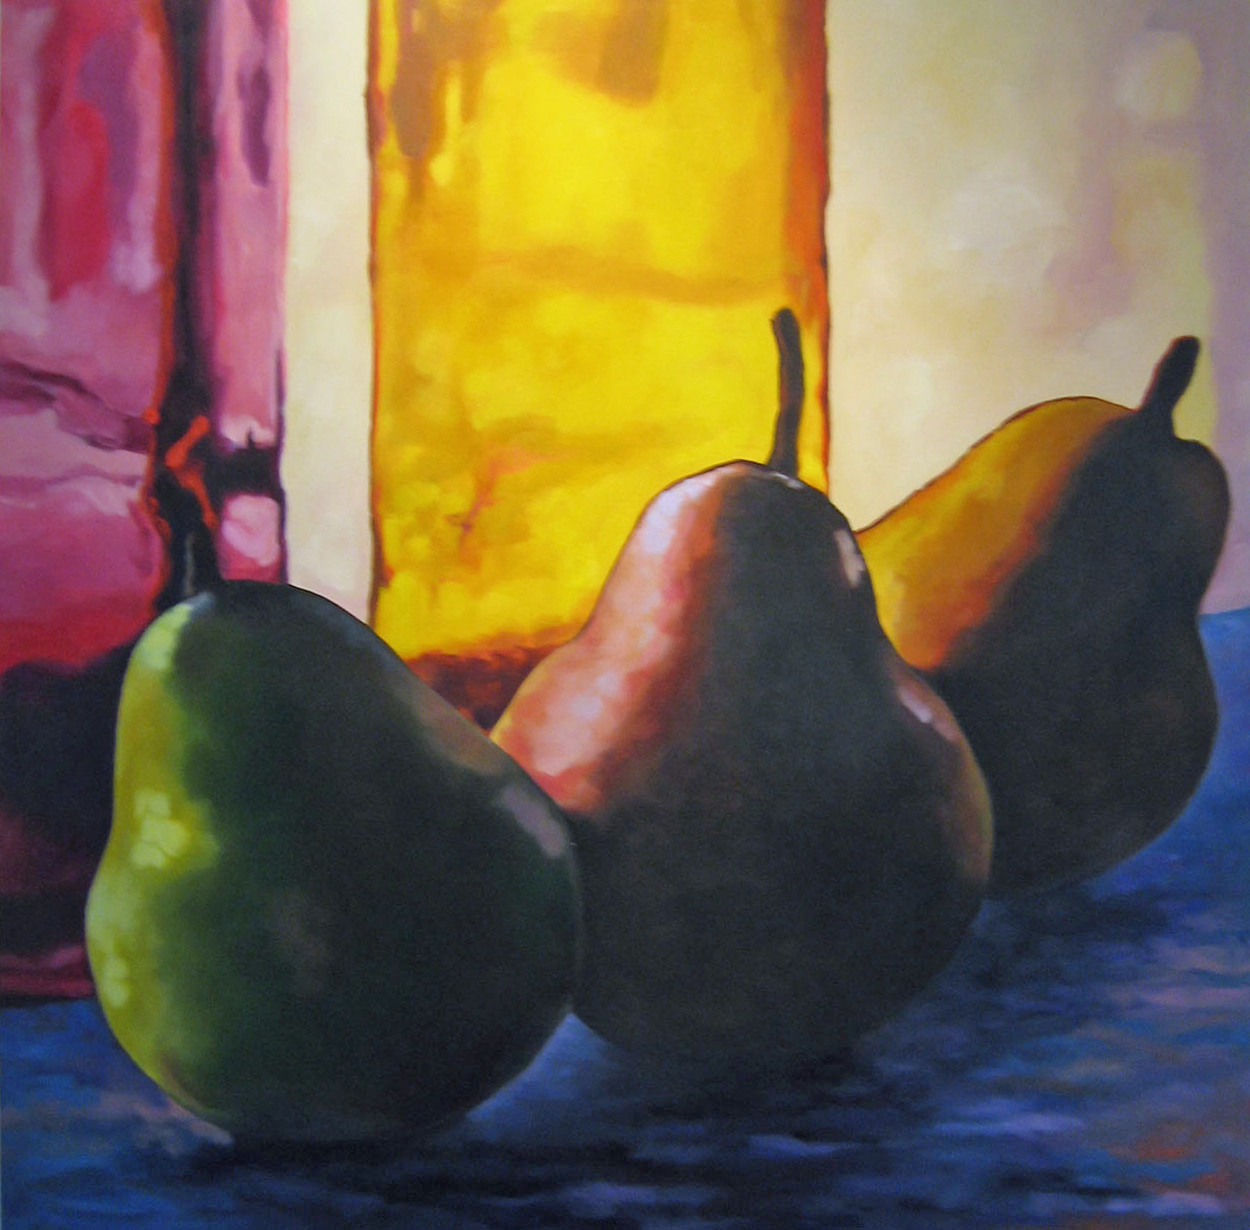 Pears and Mediation